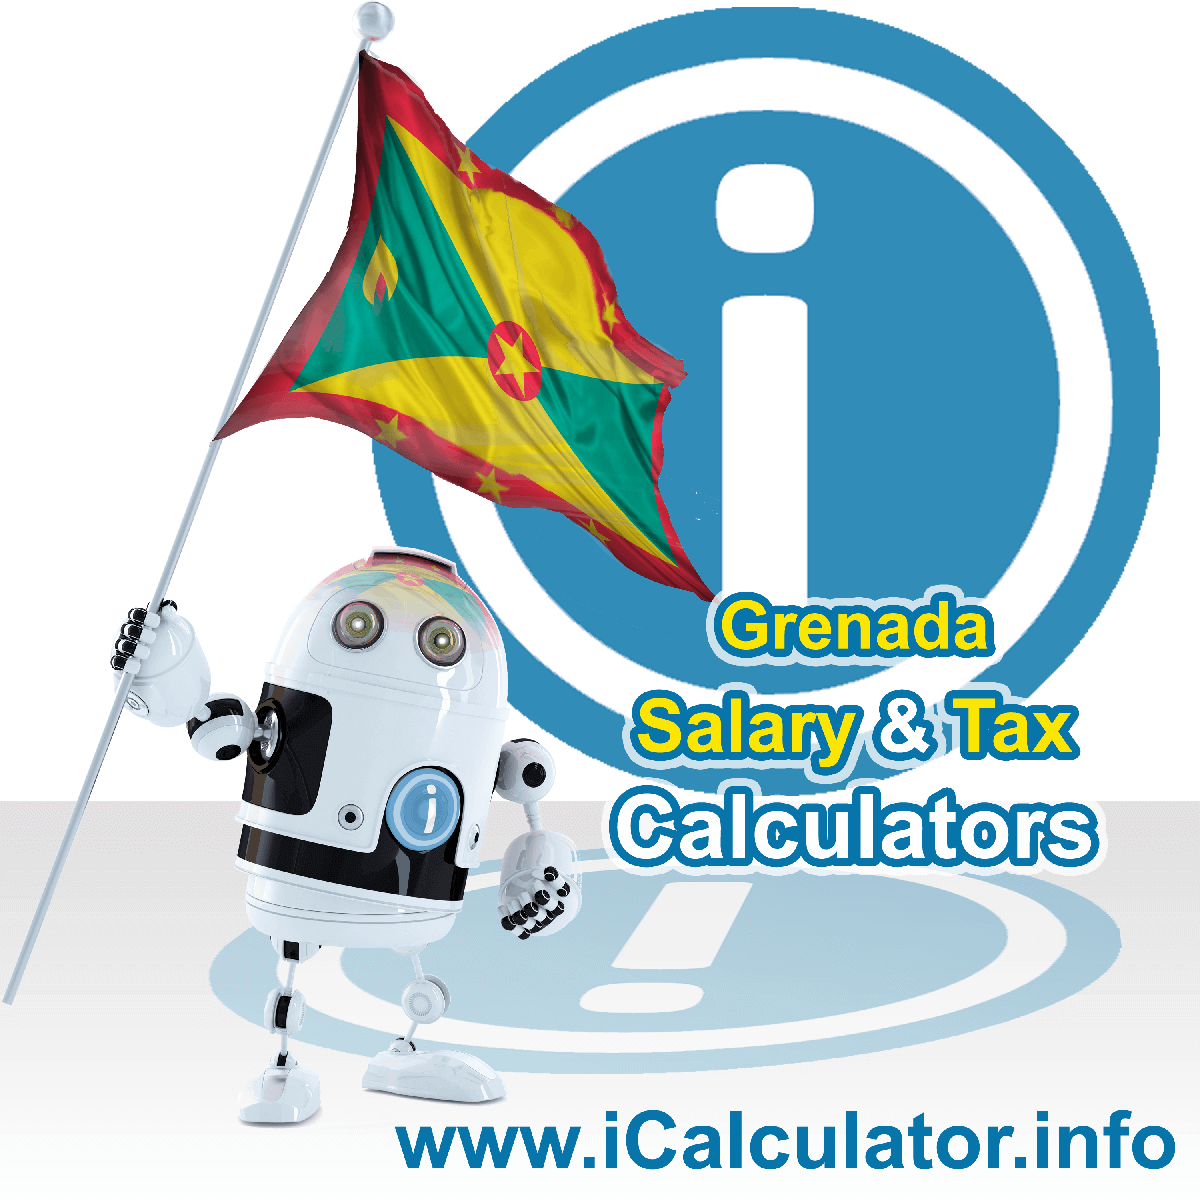 Grenada Wage Calculator. This image shows the Grenada flag and information relating to the tax formula for the Grenada Tax Calculator